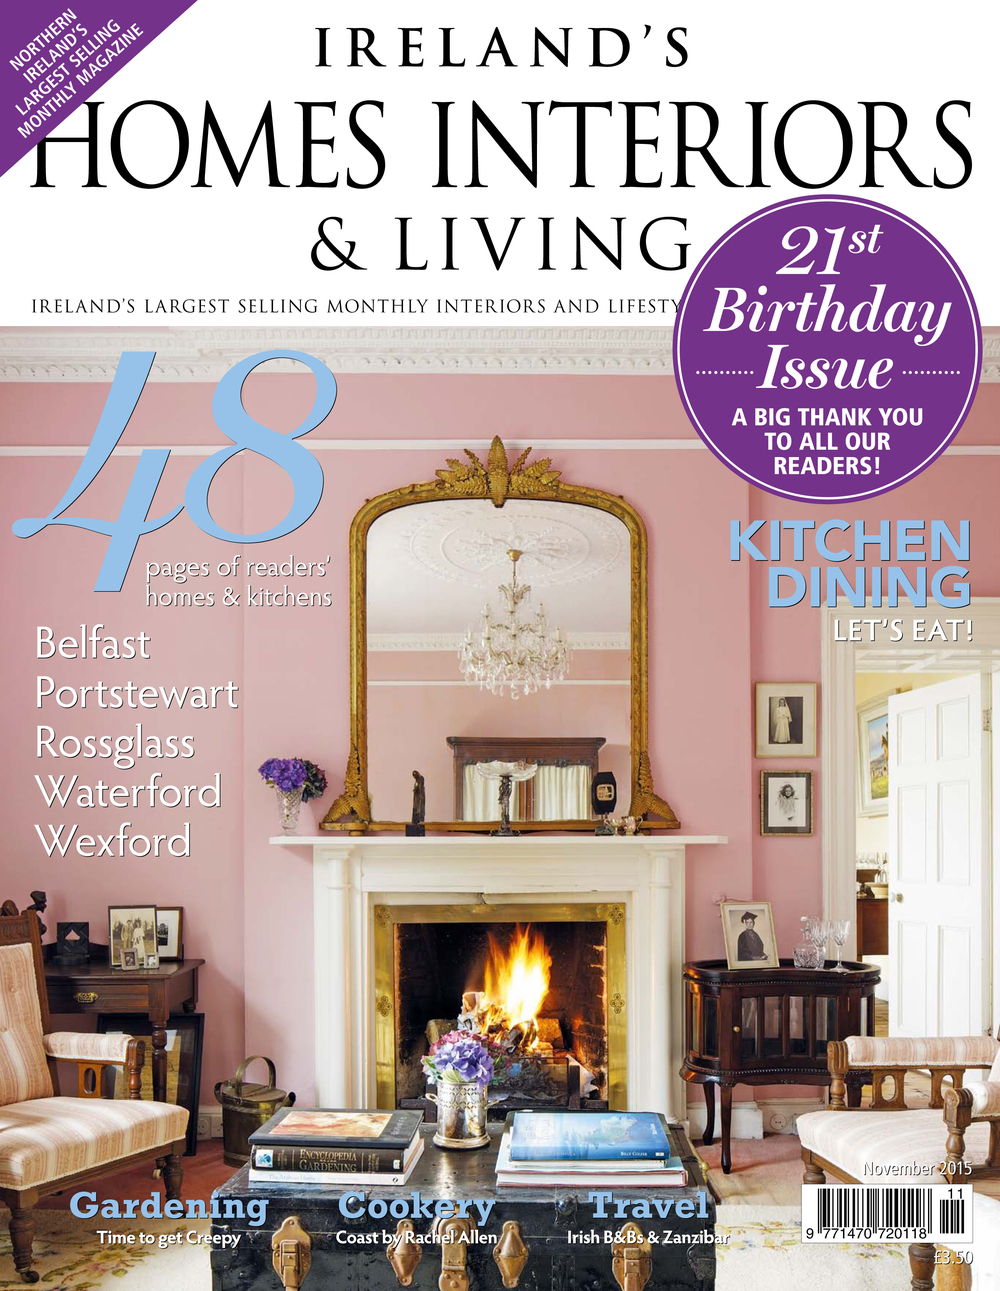 KL Design Ireland features in Ireland's Home Interiors & Living Magazine's November issue.